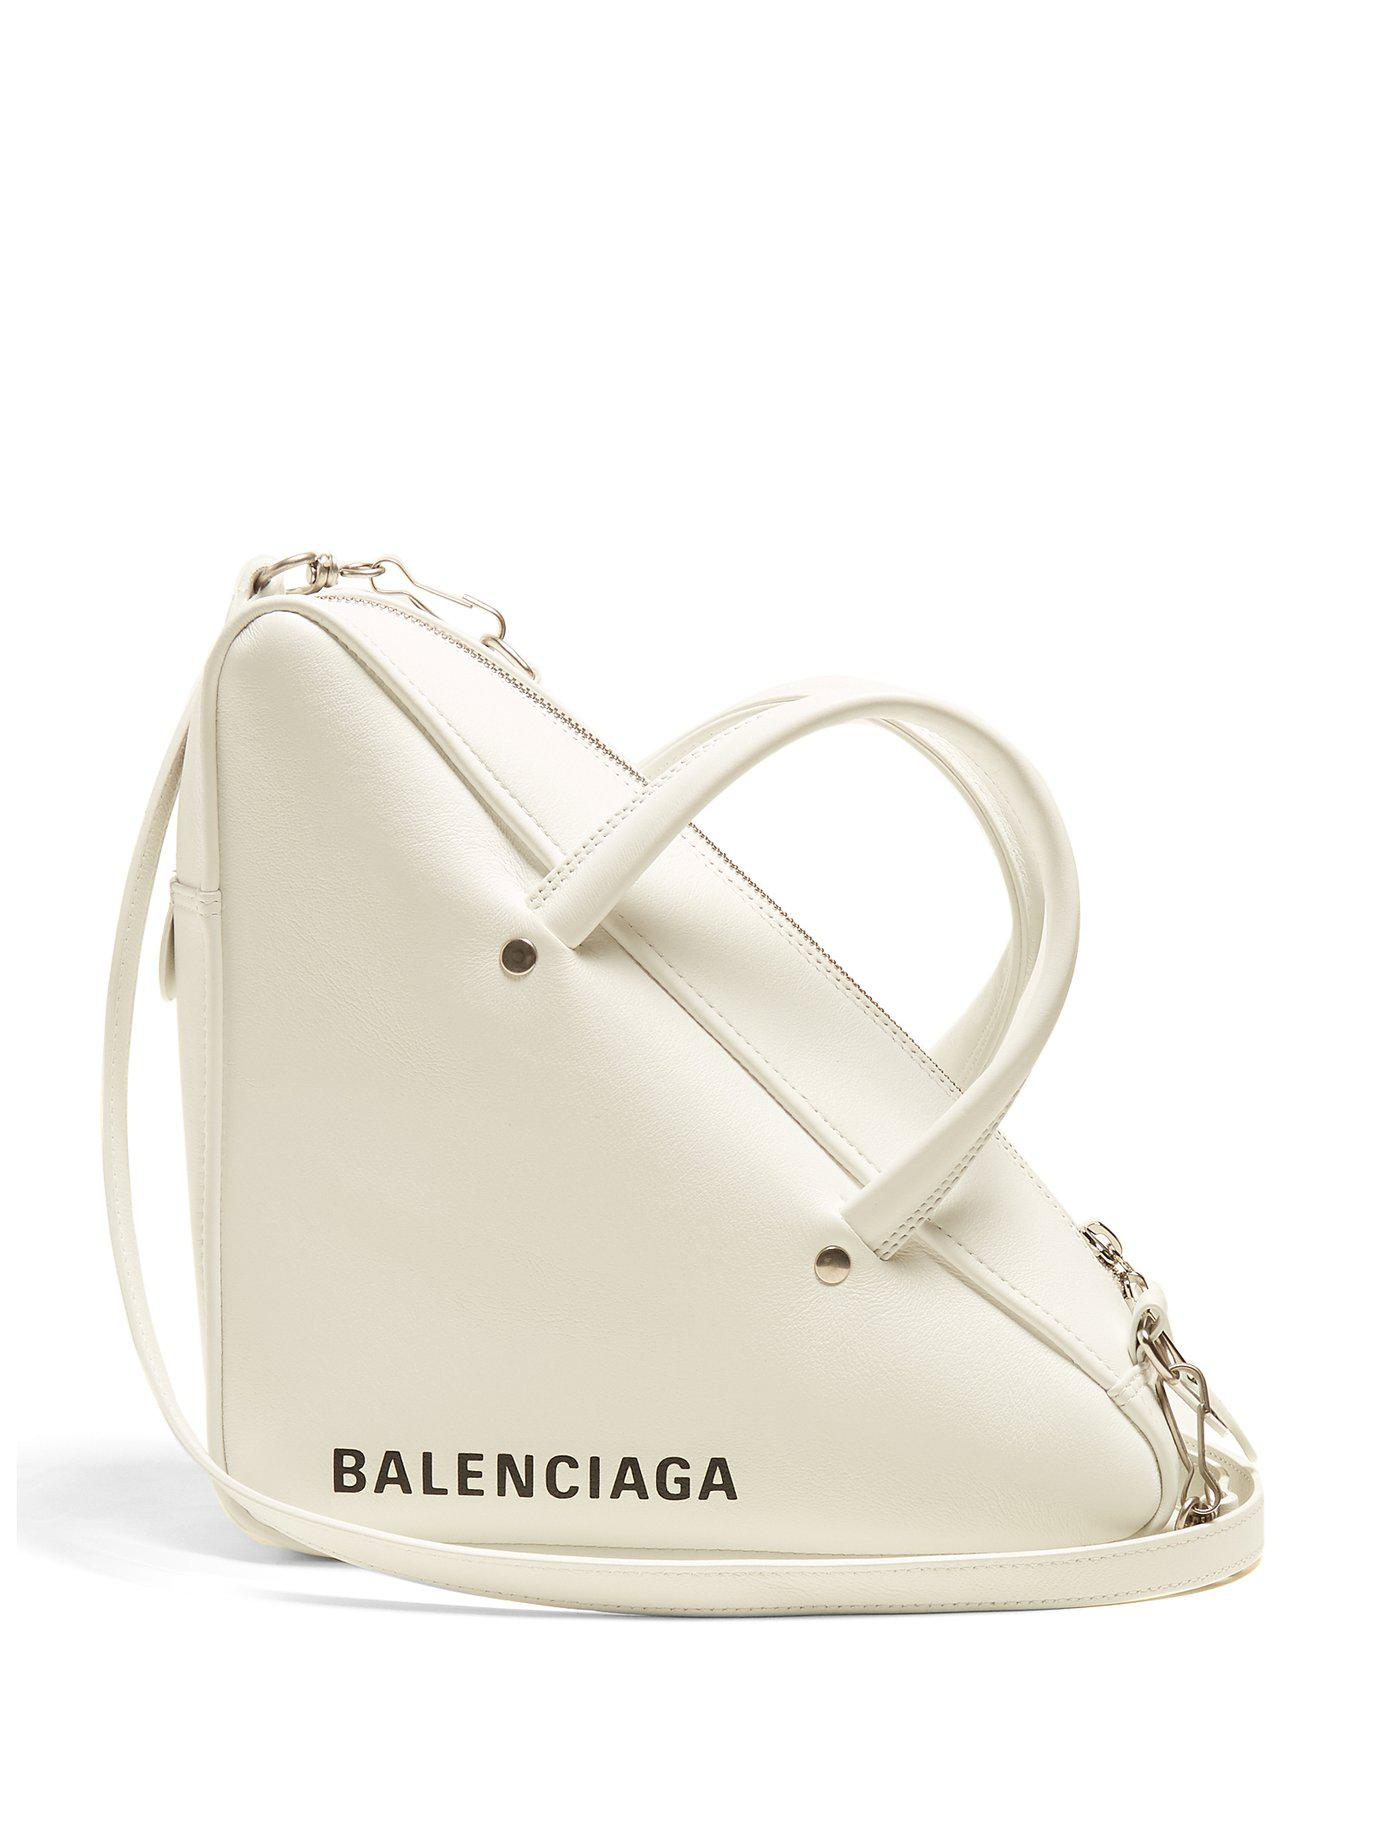 71a53aafbb balenciaga-white-Triangle-Duffle-S-Leather-Bag.jpeg